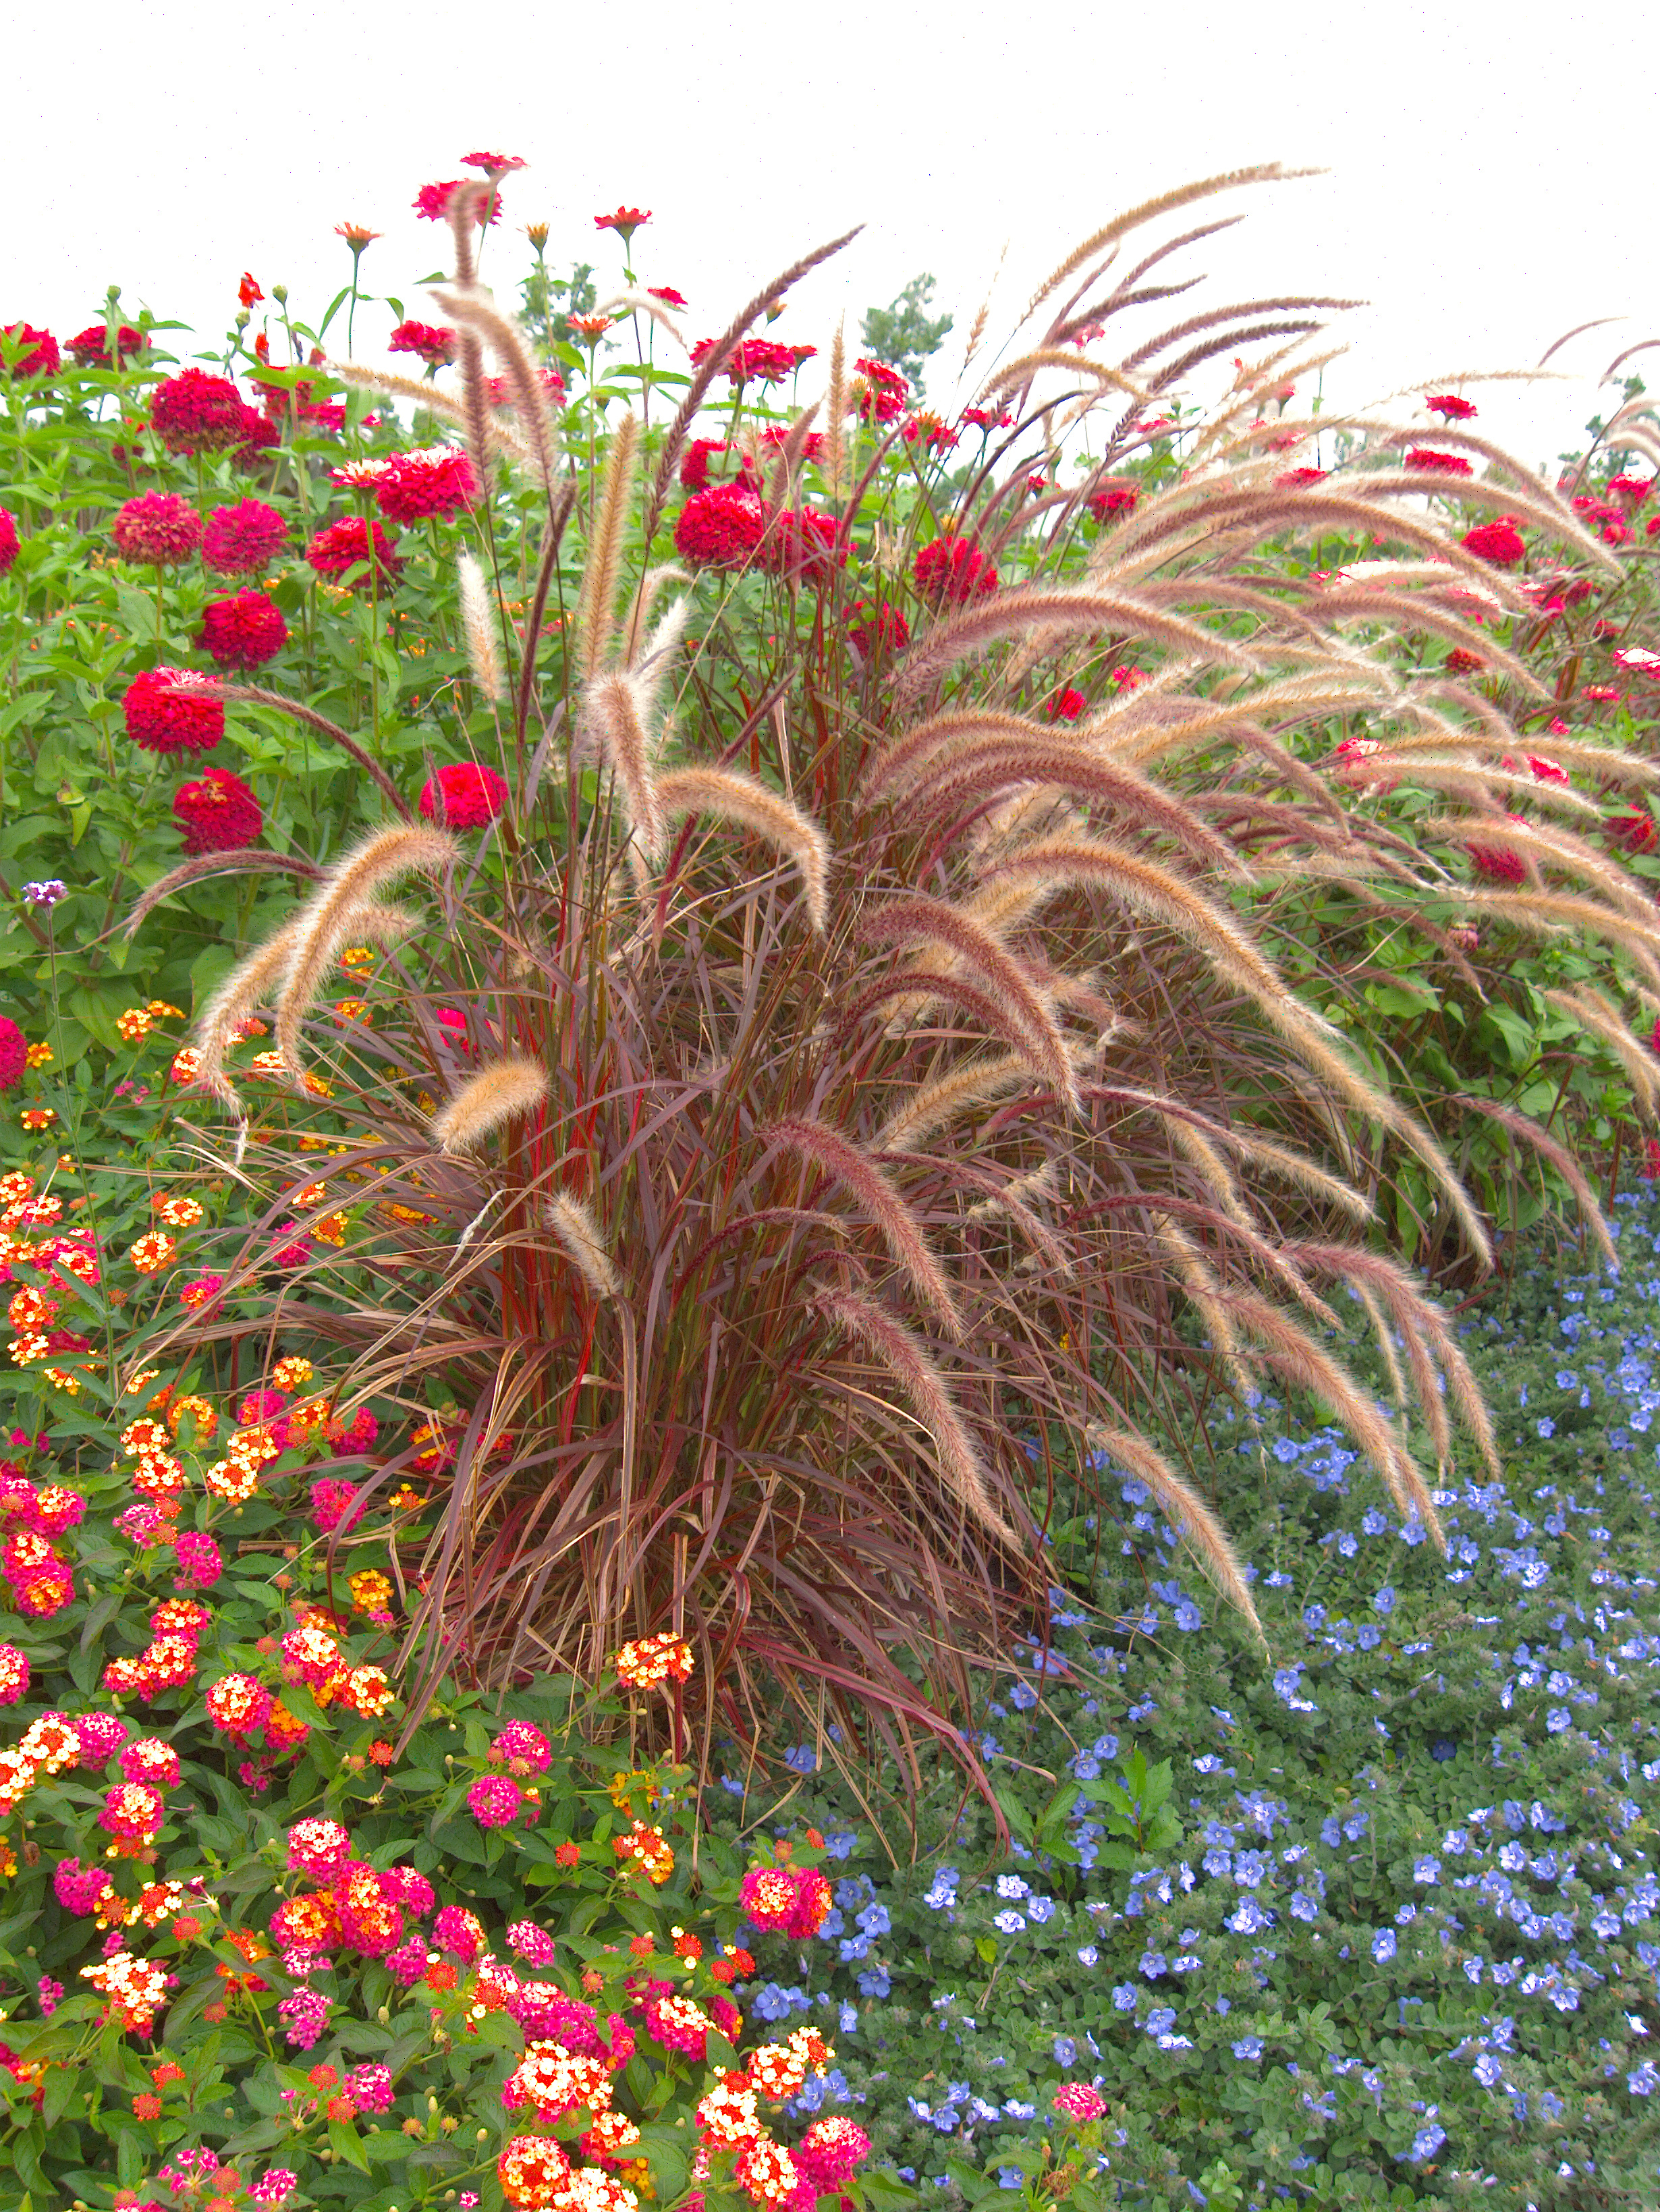 Gardens | The Mirrour of the World